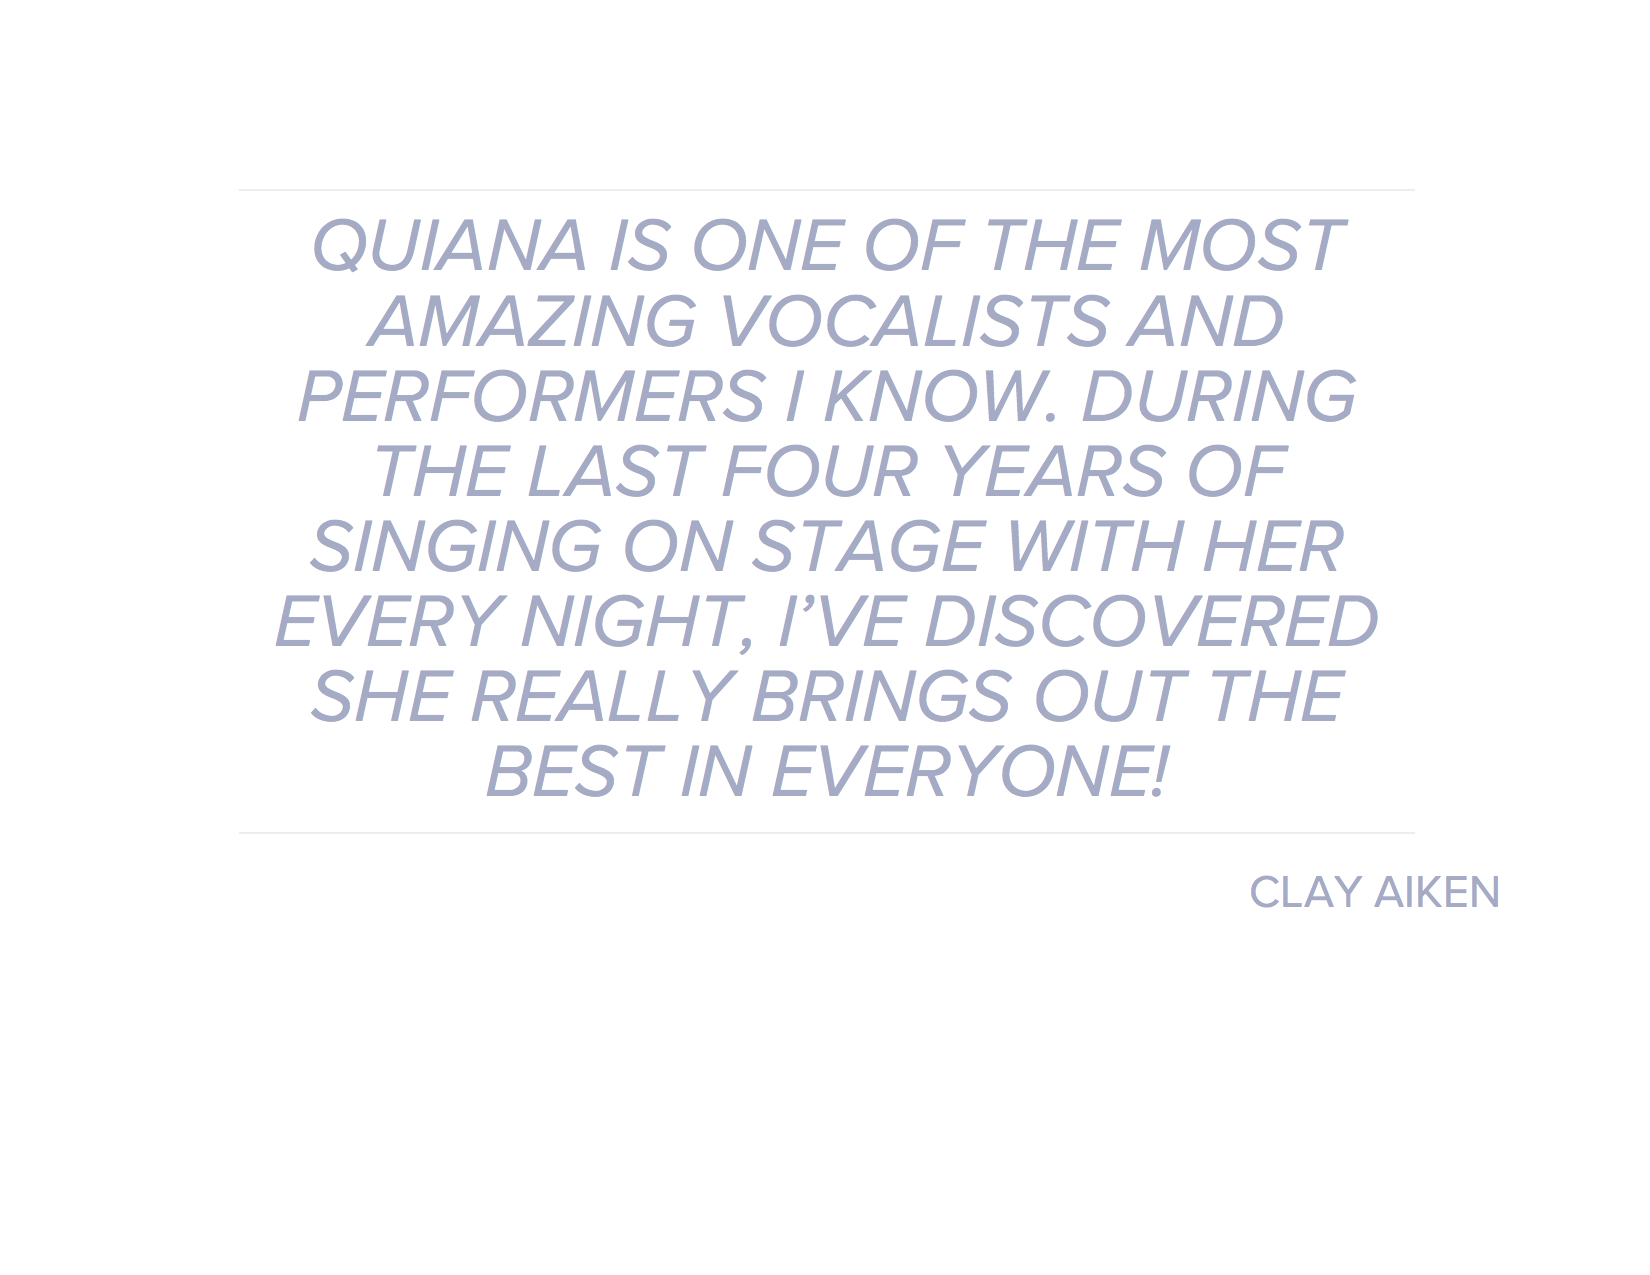 QUIANA IS ONE OF THE MOST AMAZING VOCALISTS AND PERFORMERS I KNOW.png